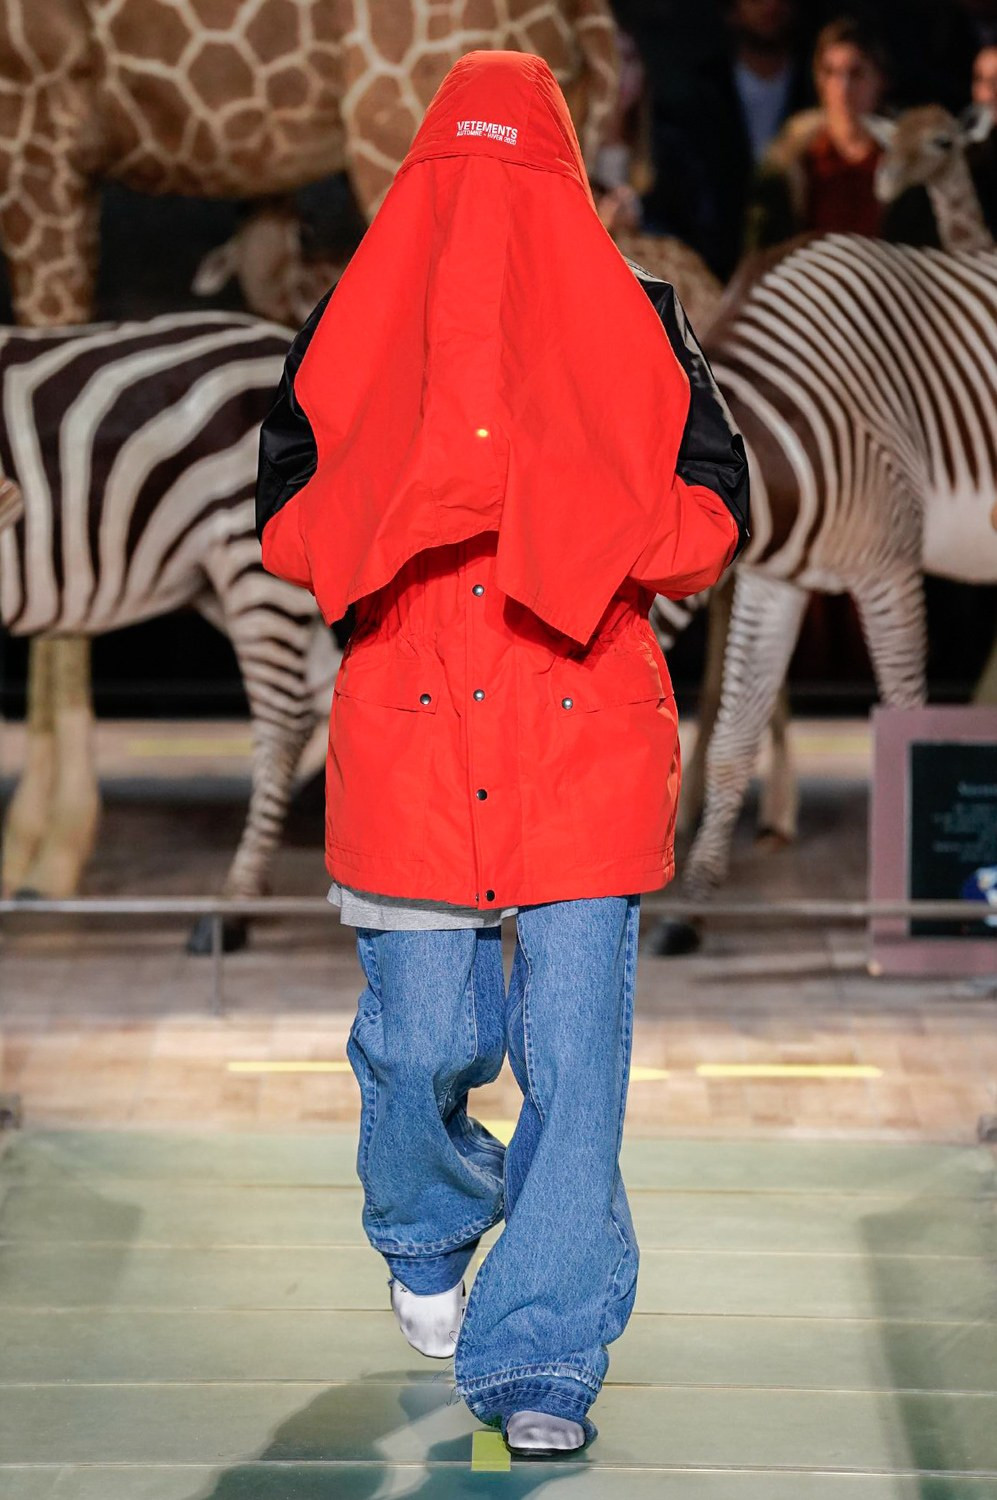 https---vetements-aw19-dtf-magazine.com-image-2019-01-vetements-fall-winter-2019-paris-fashion-week-59